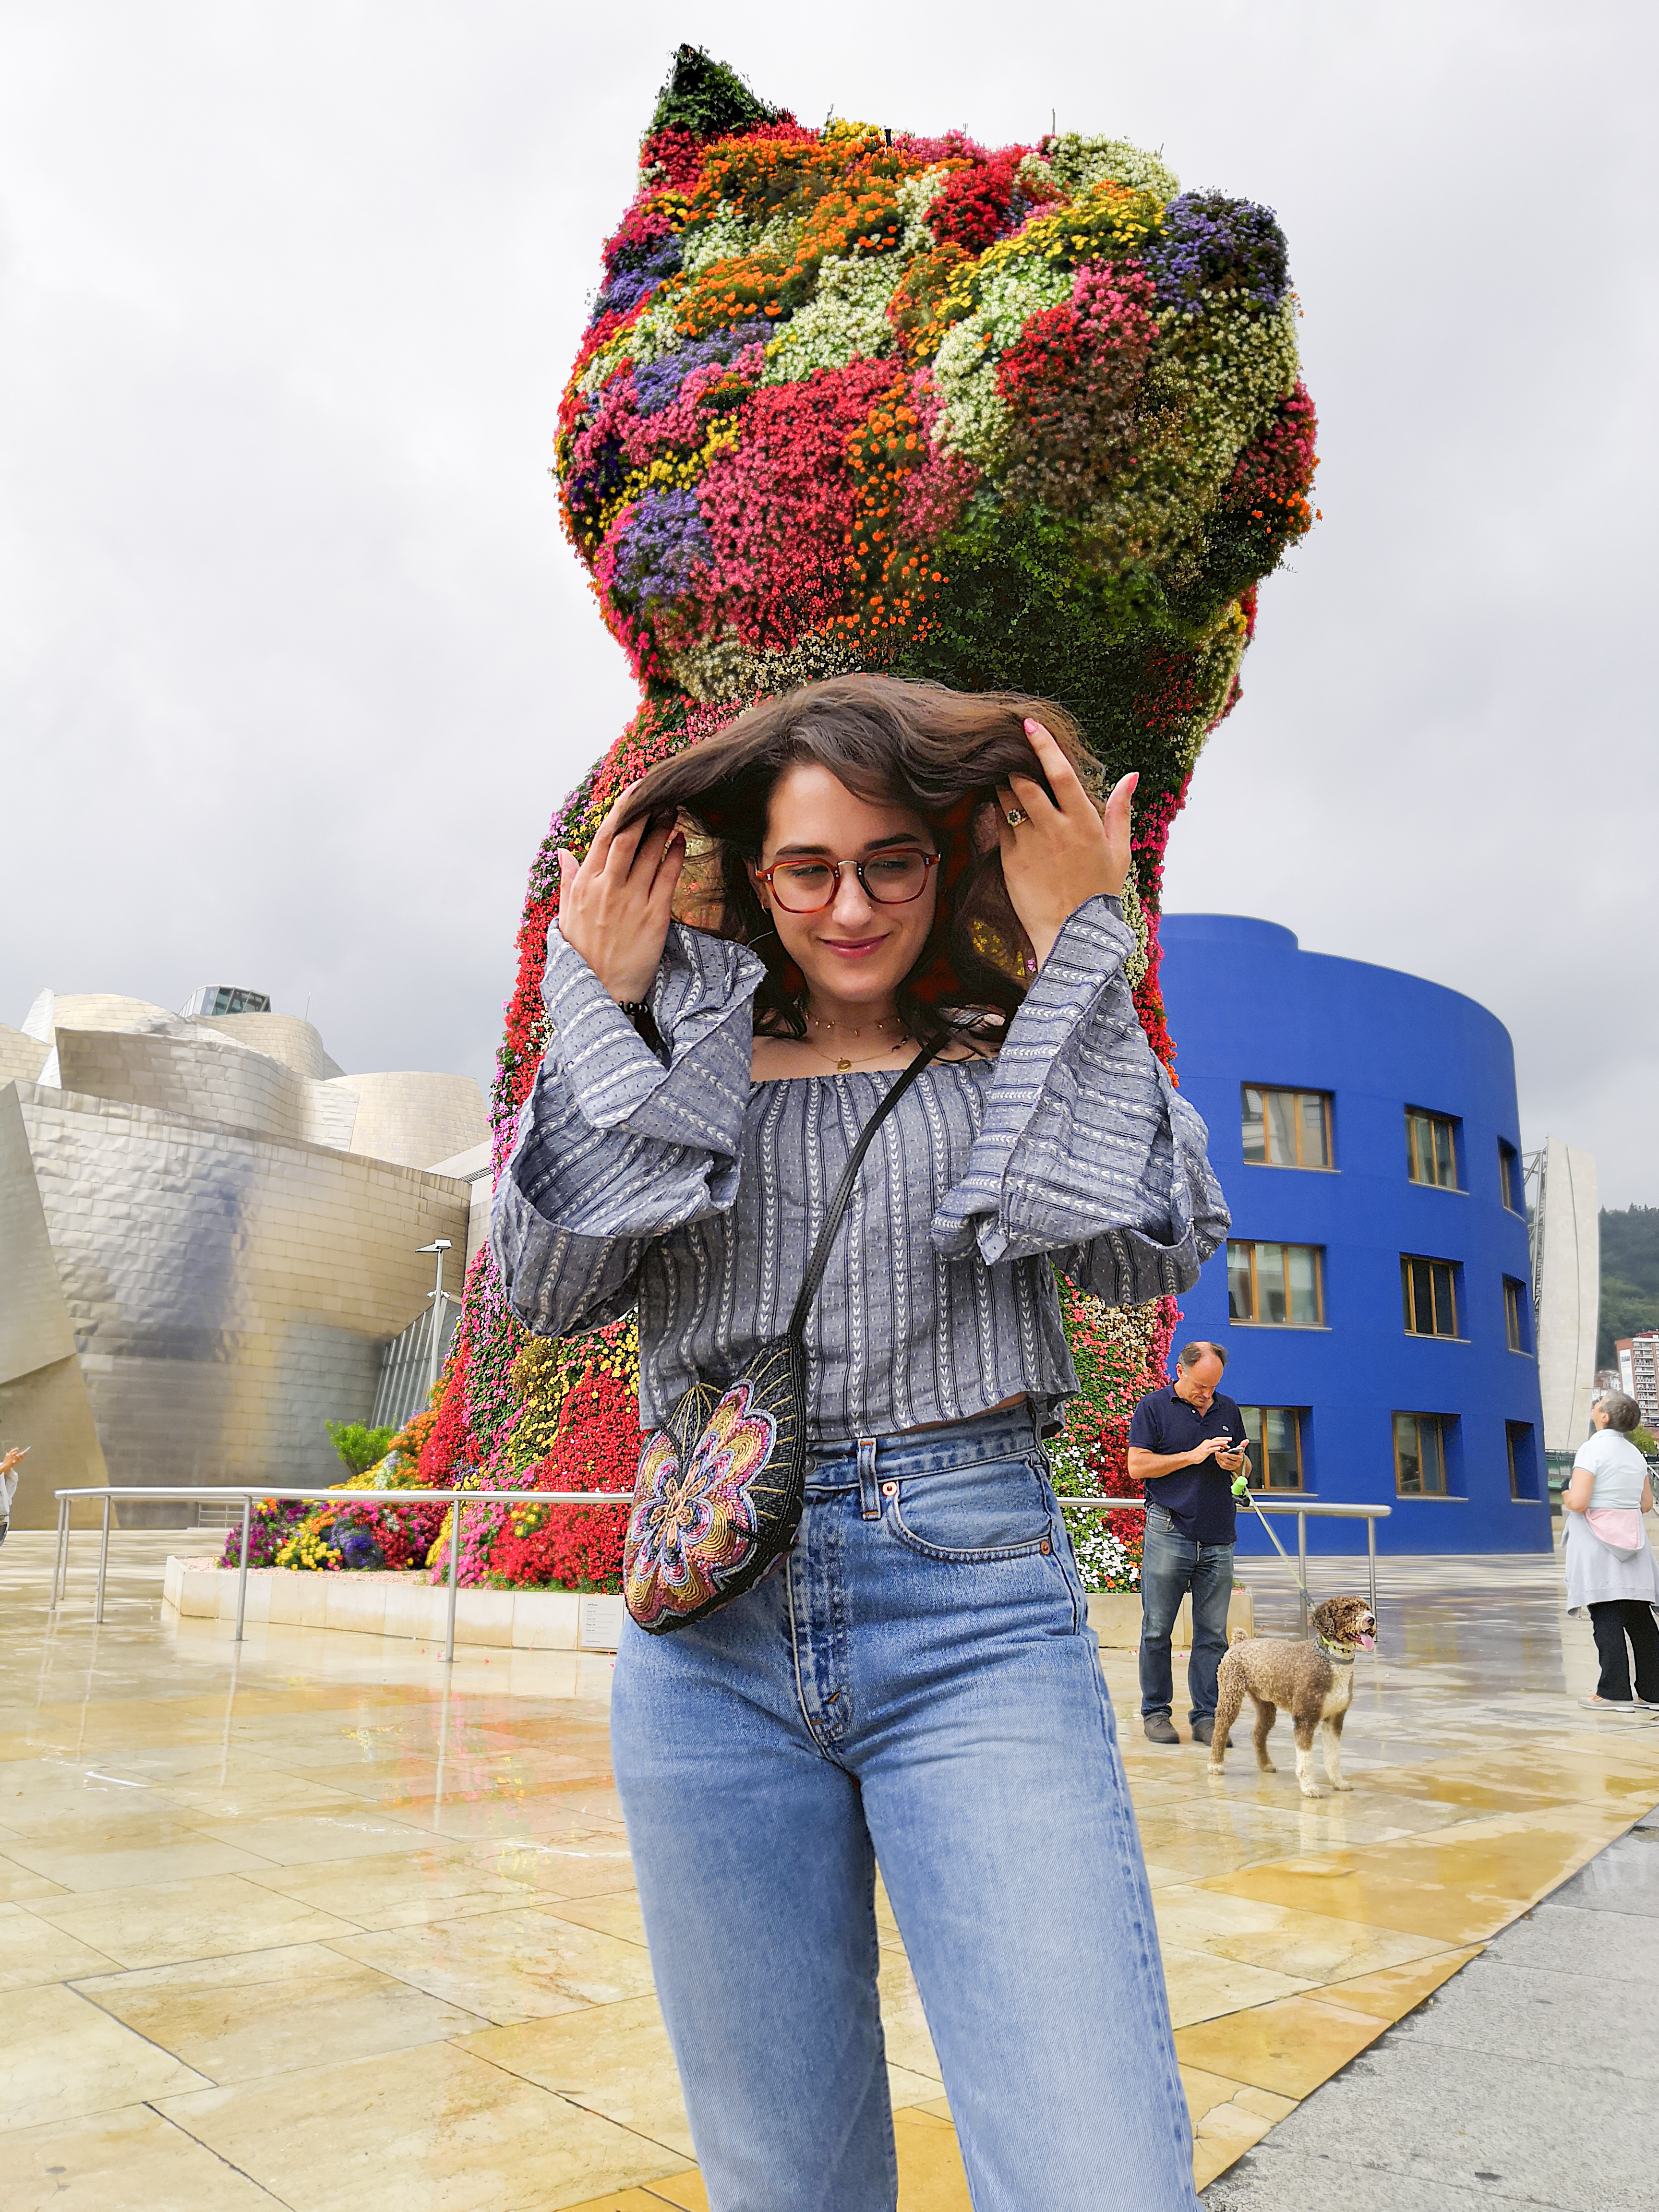 Katie is outside the Guggenheim Bilbao. She's in front of the Puppy statue. It's a drizzly day and the sky is a white / grey between showers. She wears a blue-grey off the shoulder crop top with tiered flute sleeves, high waisted jeans, white sneakers and a multicoloured beaded crossbody bag.